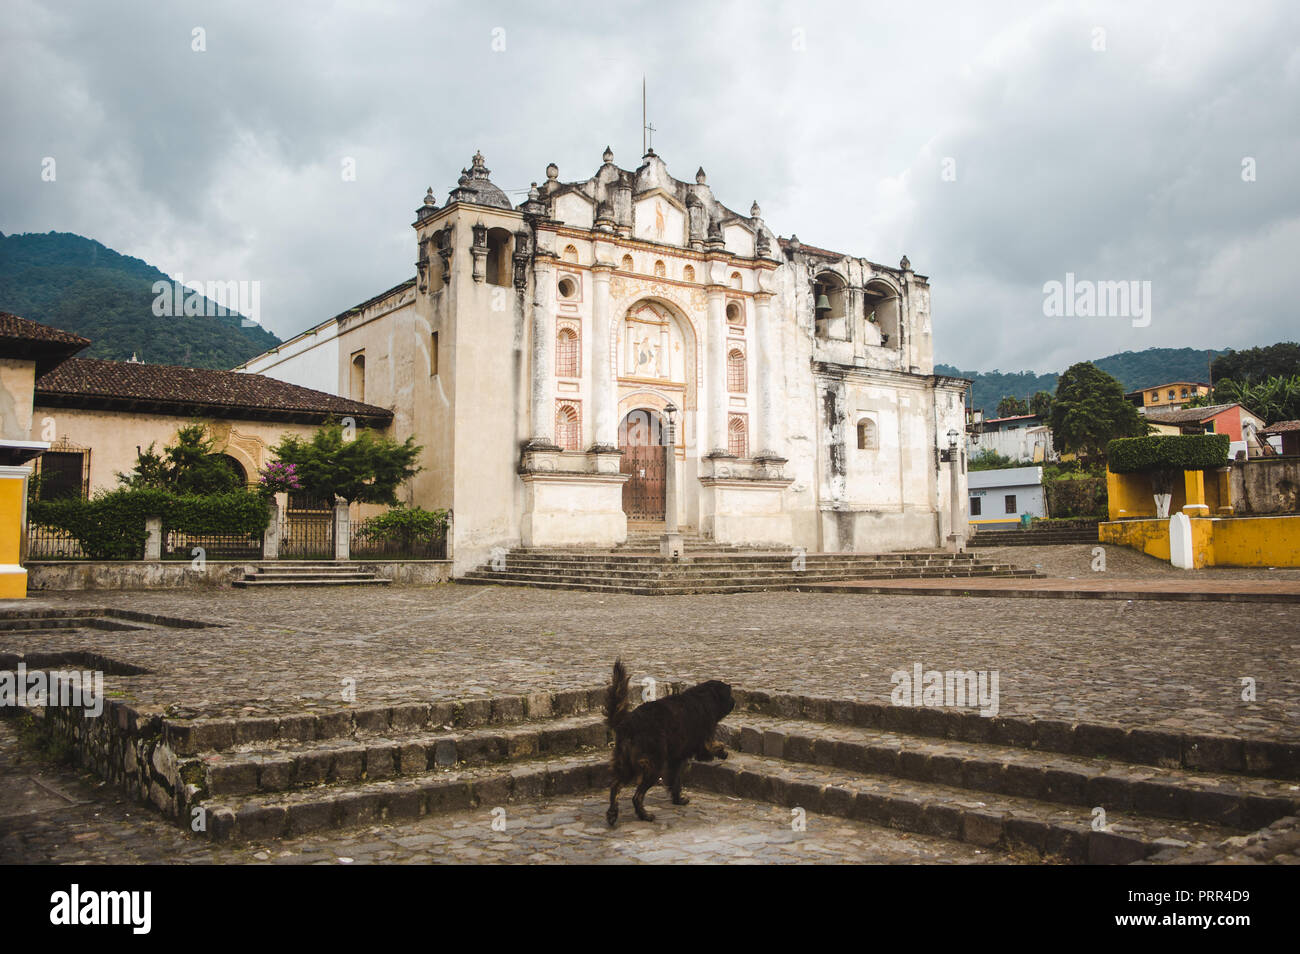 Stray dog walks up steps to a church in the main plaza of the small town of San Juan del Obispo, just outside Antigua, Guatemala Stock Photo